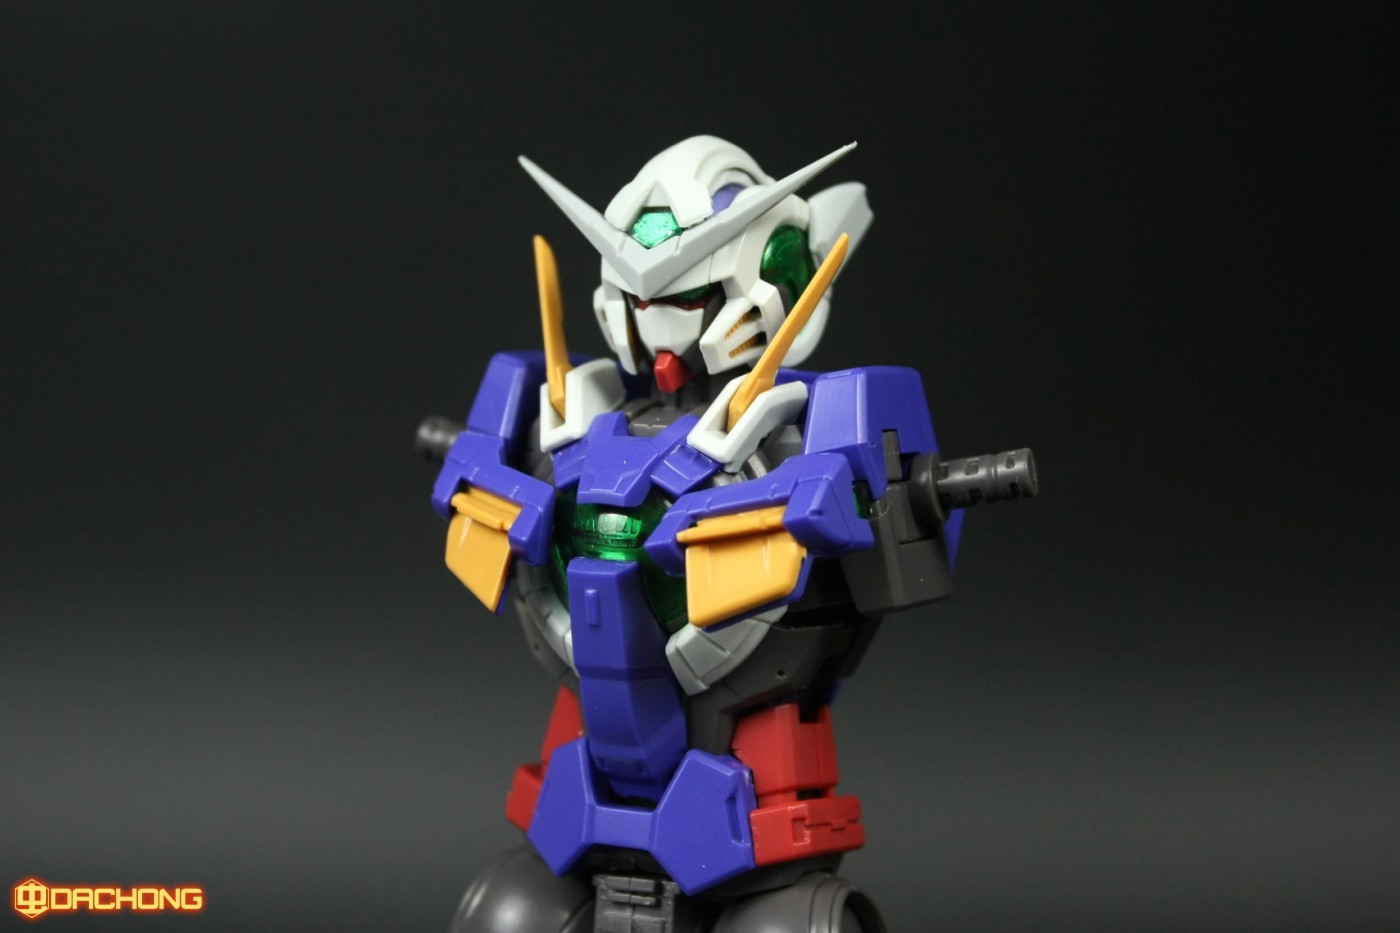 S254_MG_exia_HS_review_inask_042.jpg